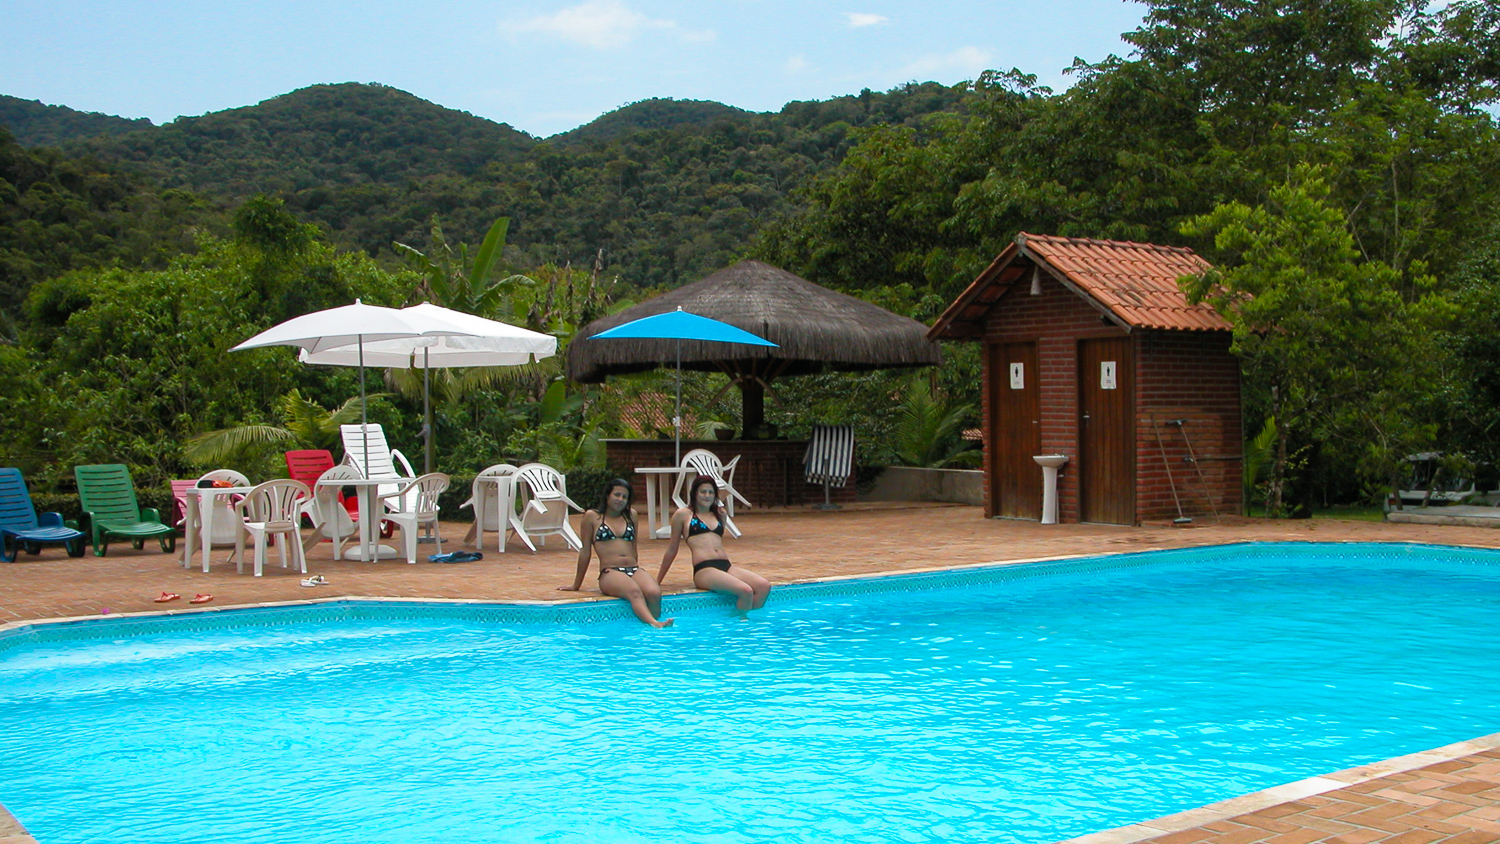 Salve floresta's swimming pool